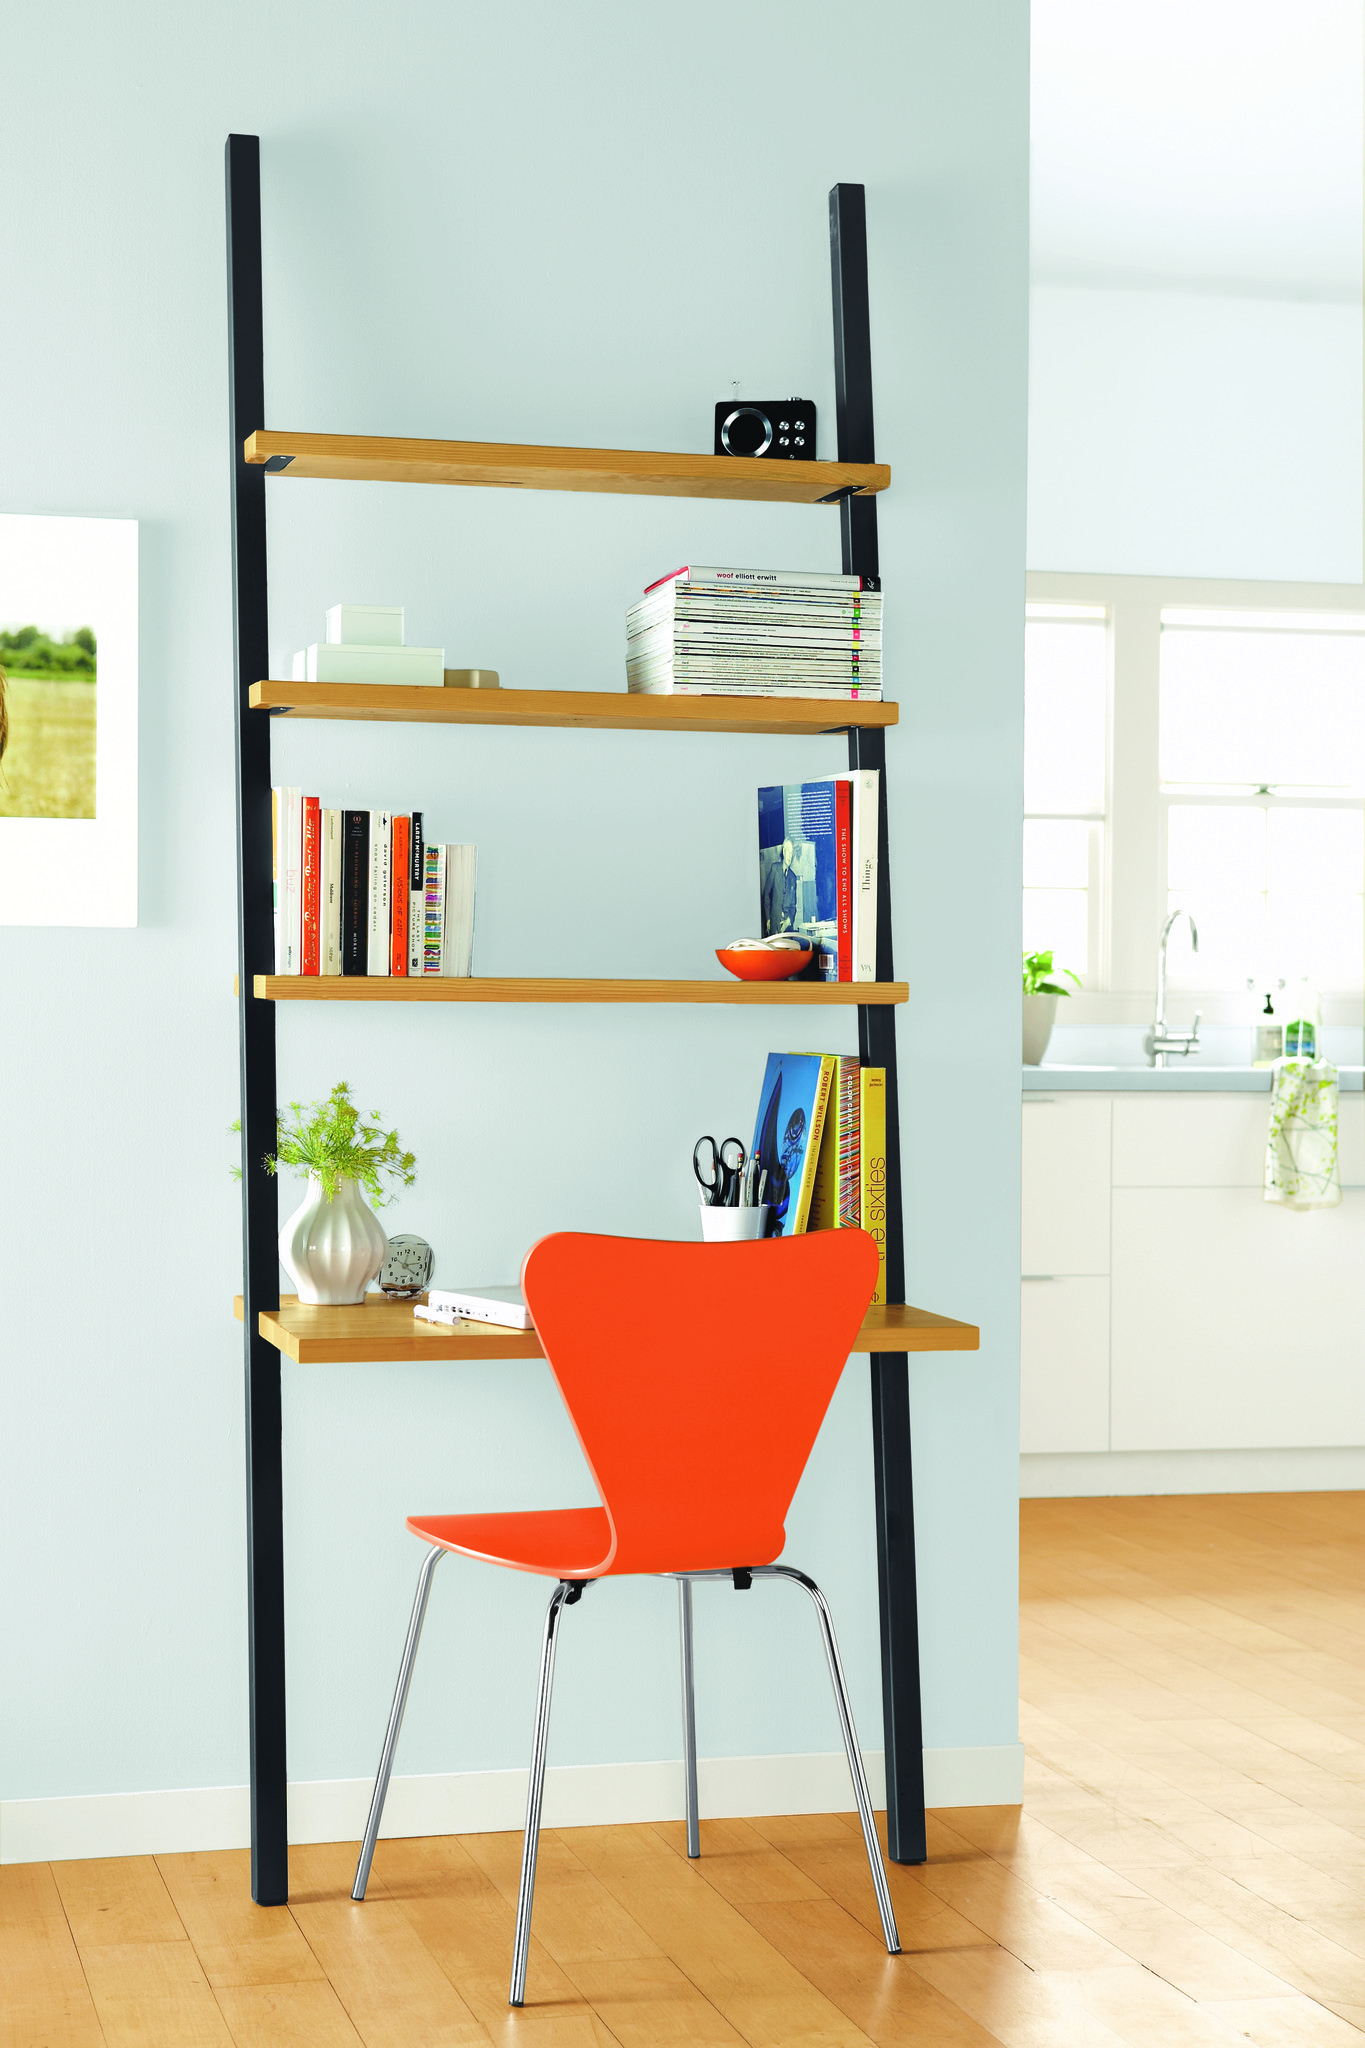 & Minimalist Desks: They Simply Get The Job Done - Hartford Courant